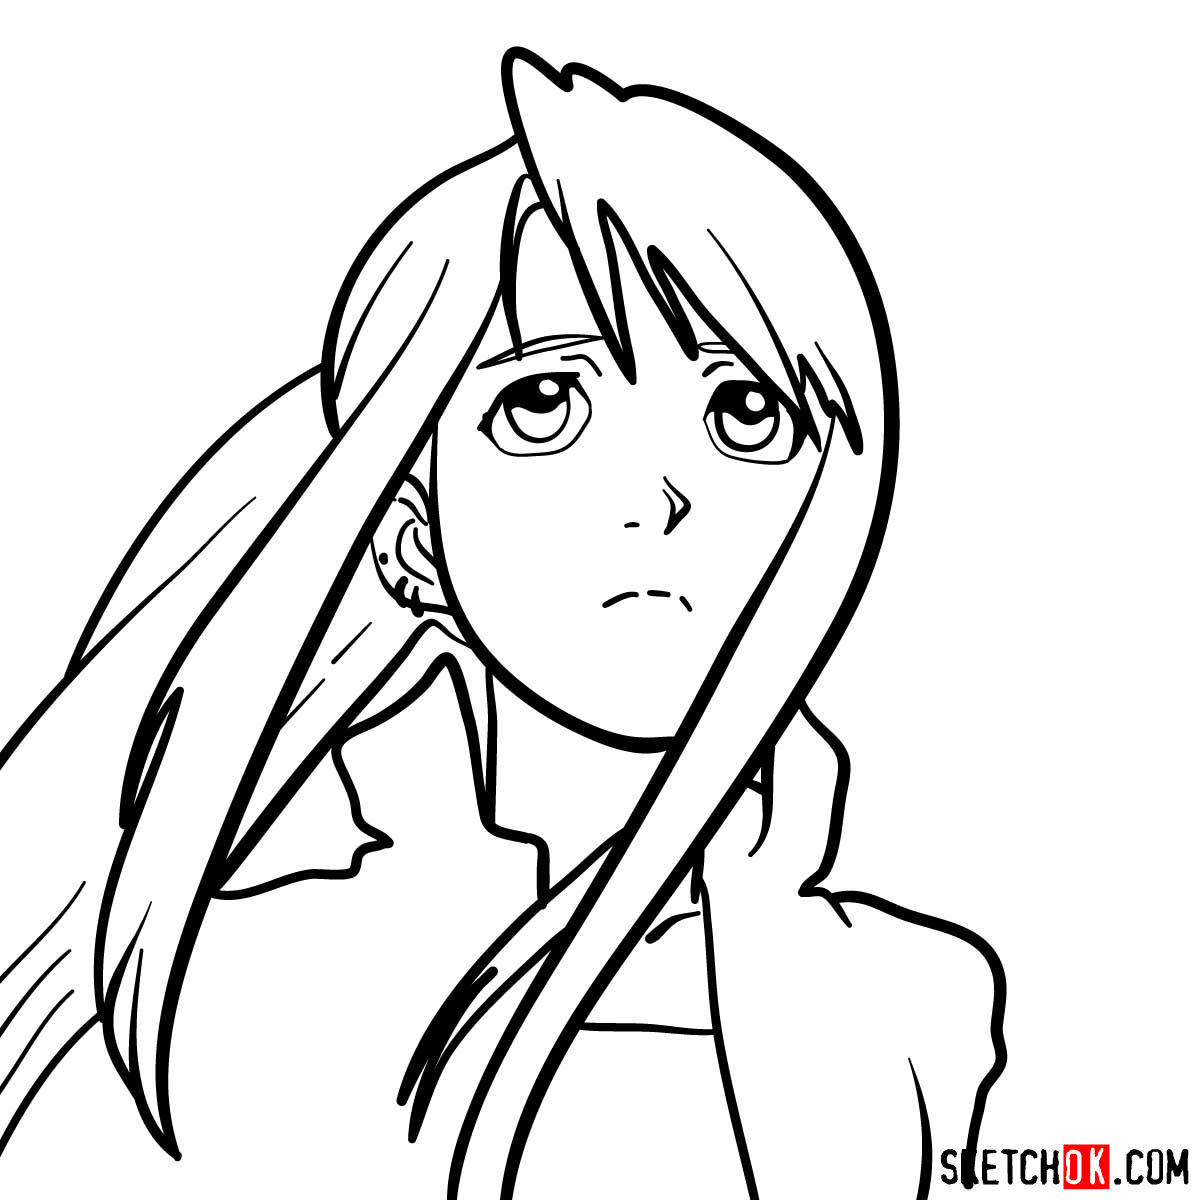 How to draw Winry Rockbell's face